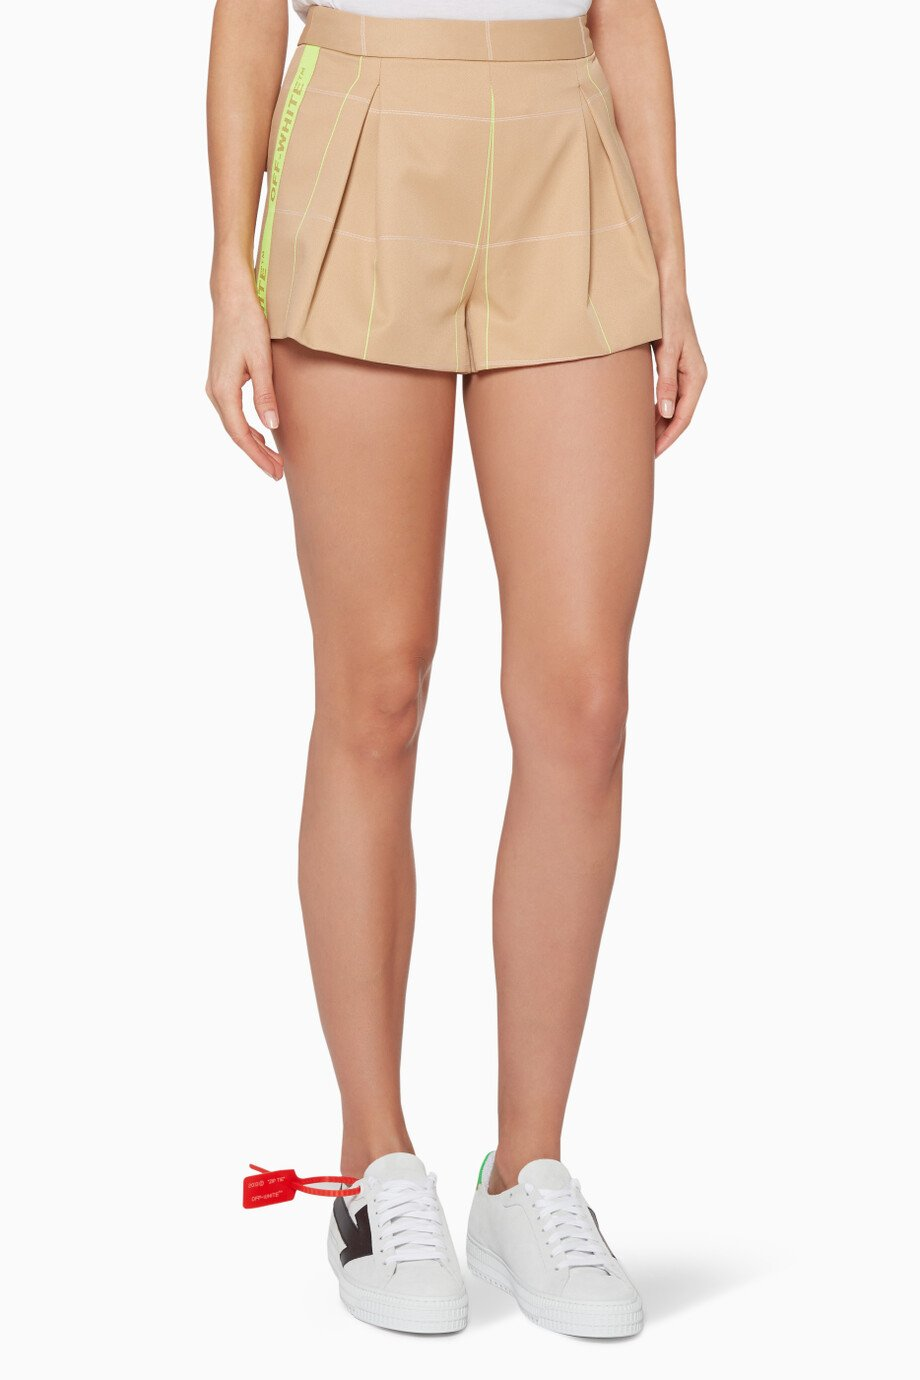 c1e9422234f2c Shop Off-White Neutral Beige Logo Tape Shorts for Women